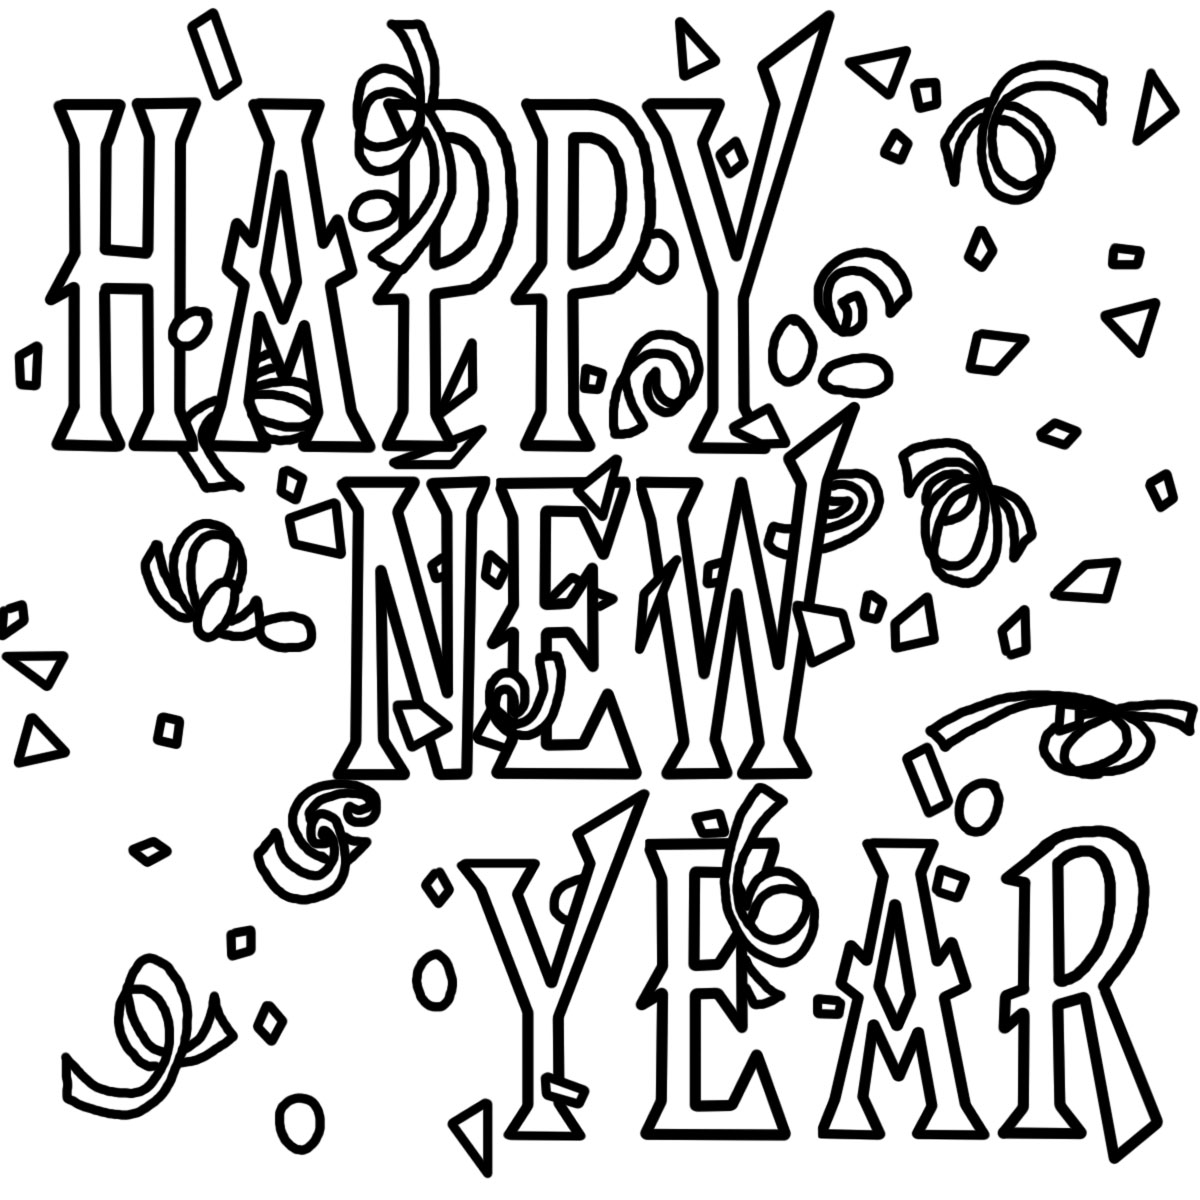 Black and white church. 2016 clipart new year